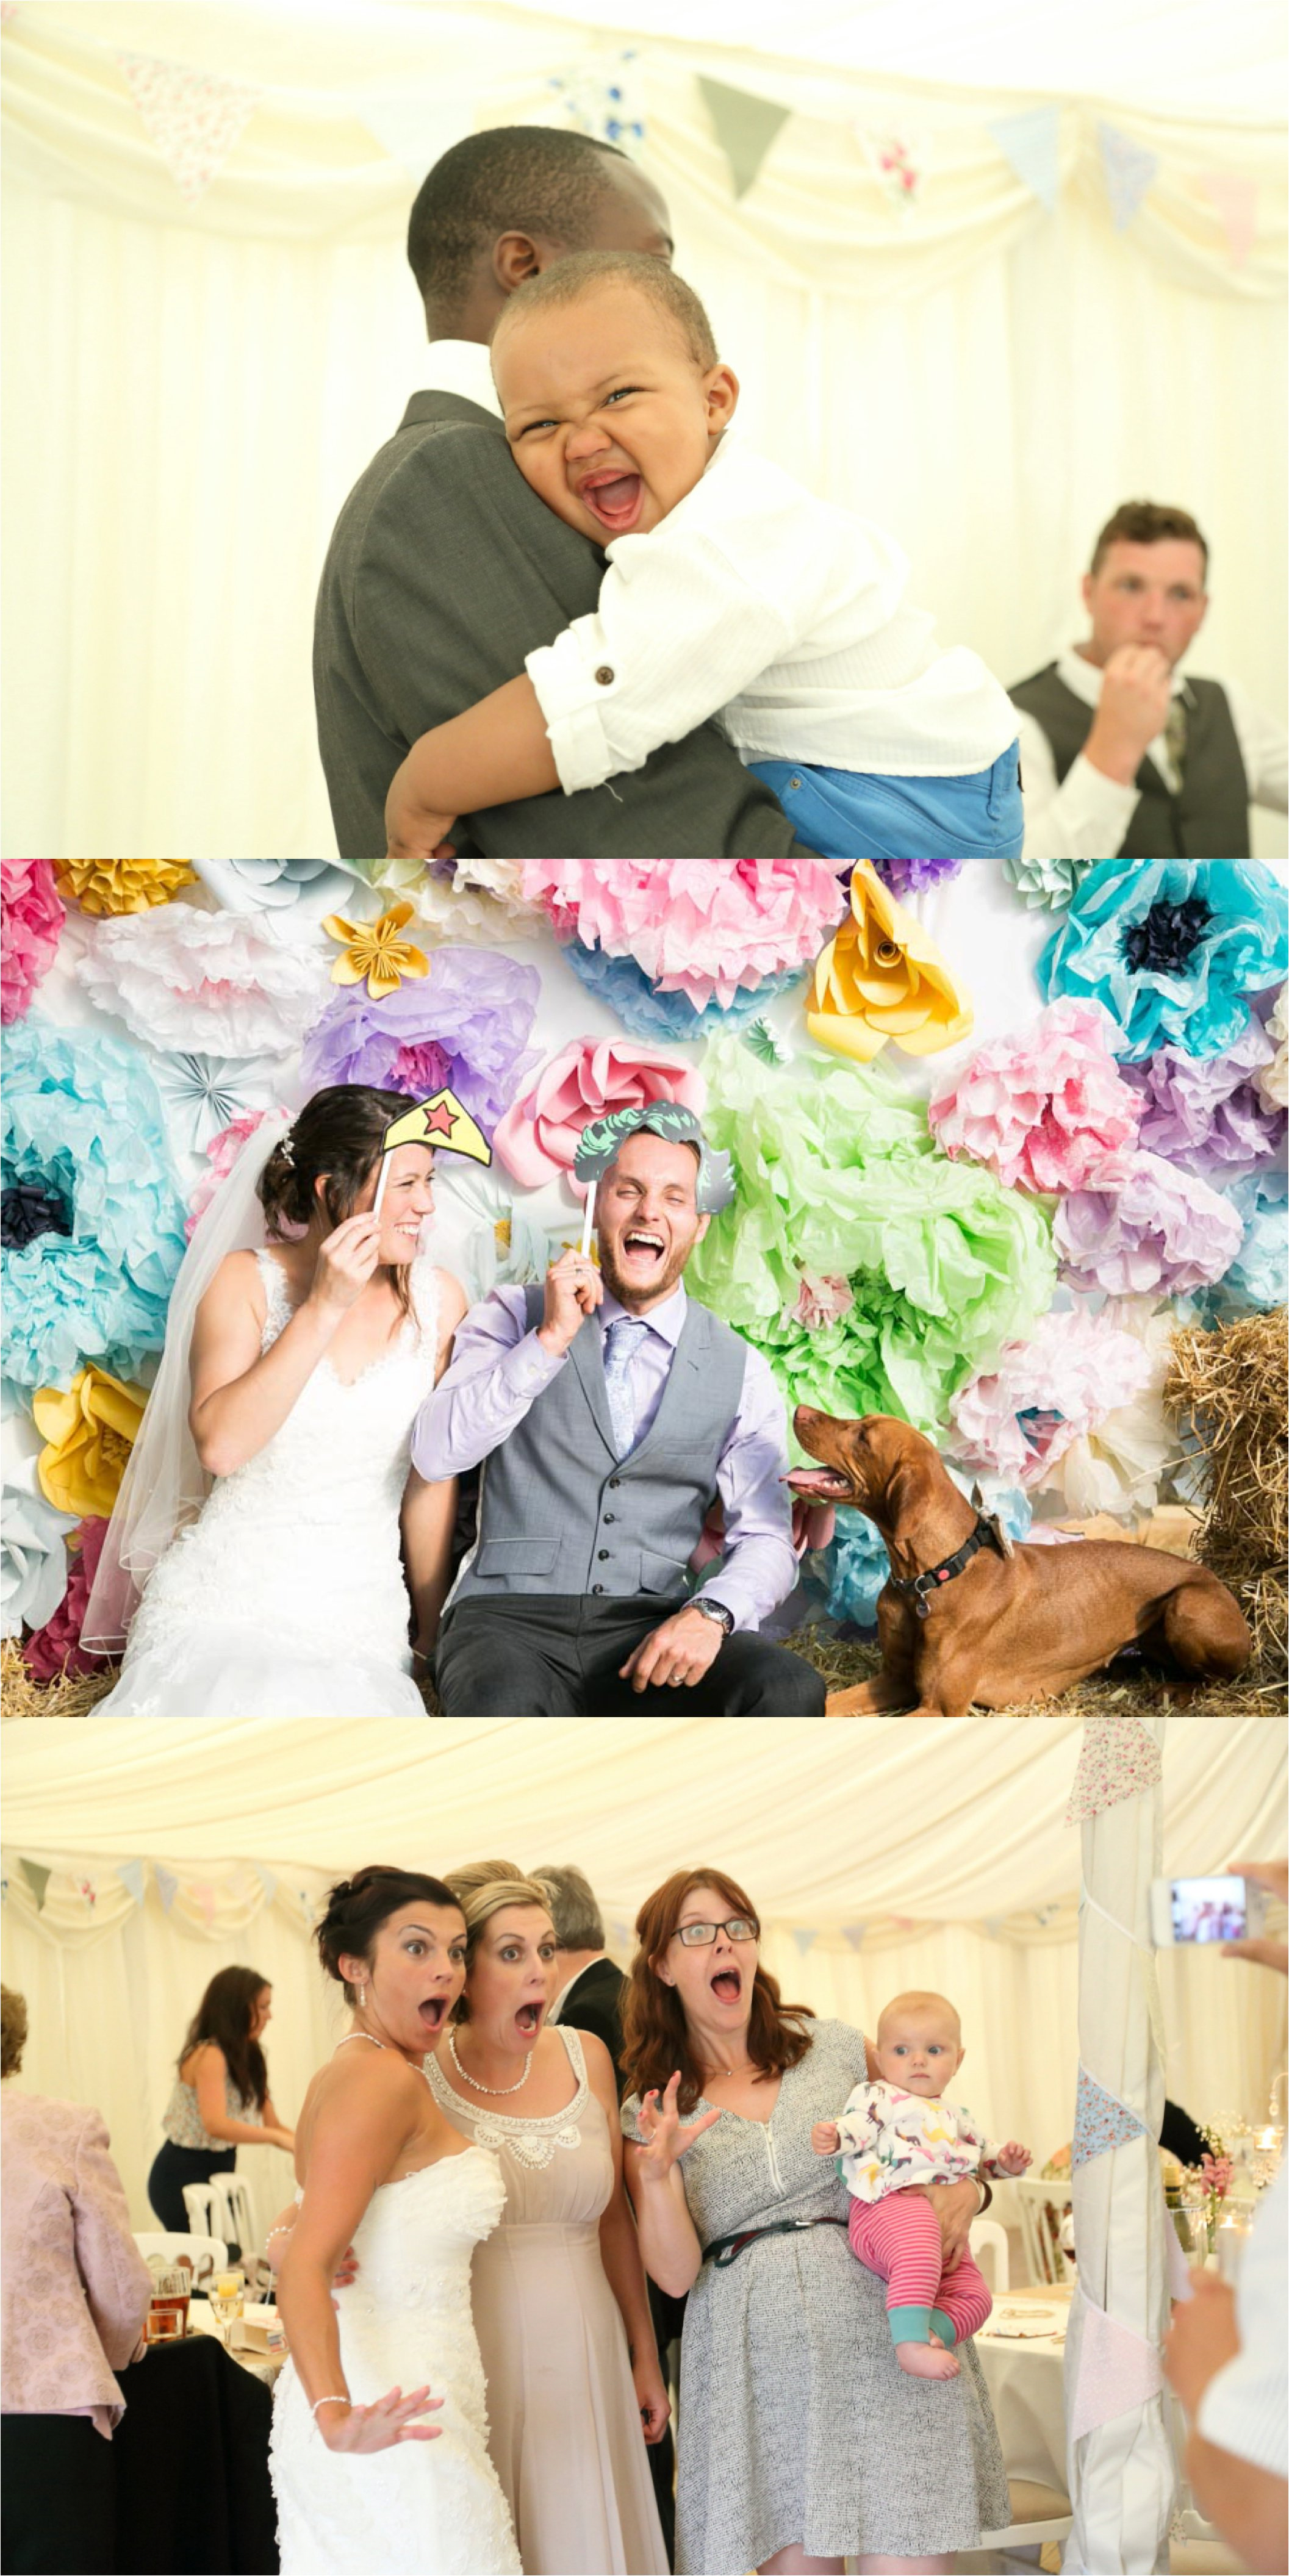 lots of laughter and fun at cambridge and suffolk weddings